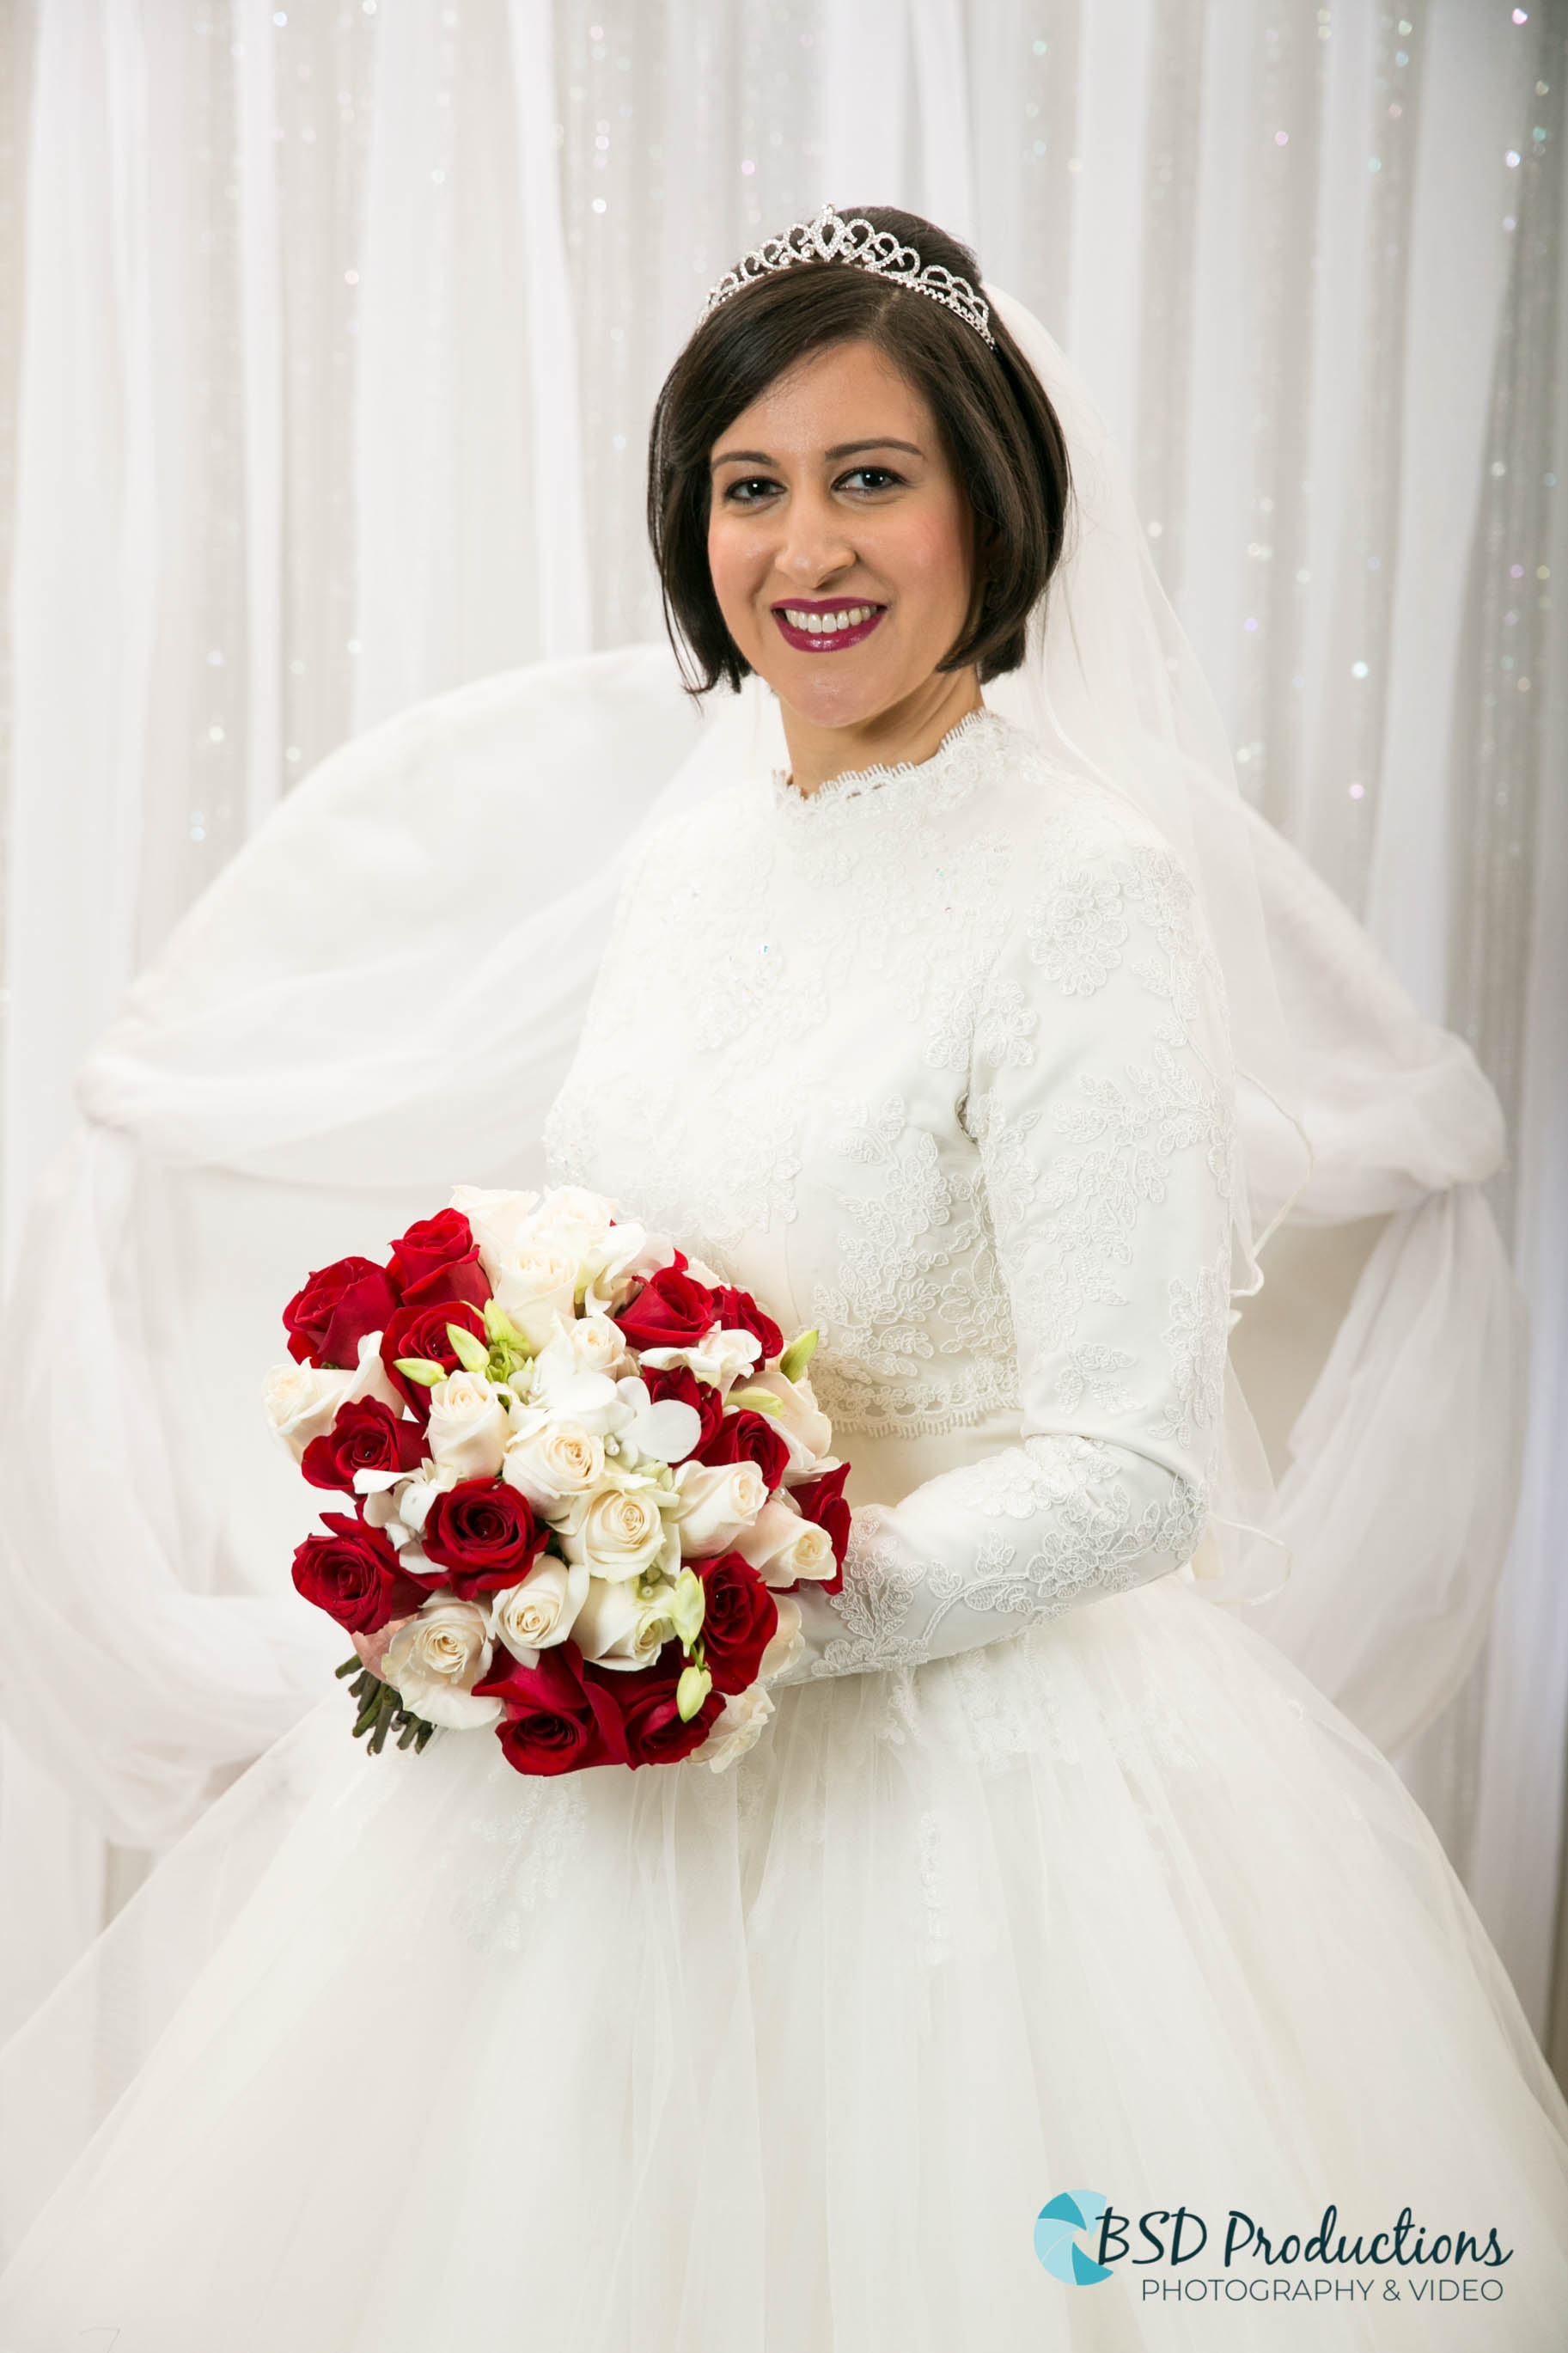 UH5A2336 Wedding – BSD Productions Photography